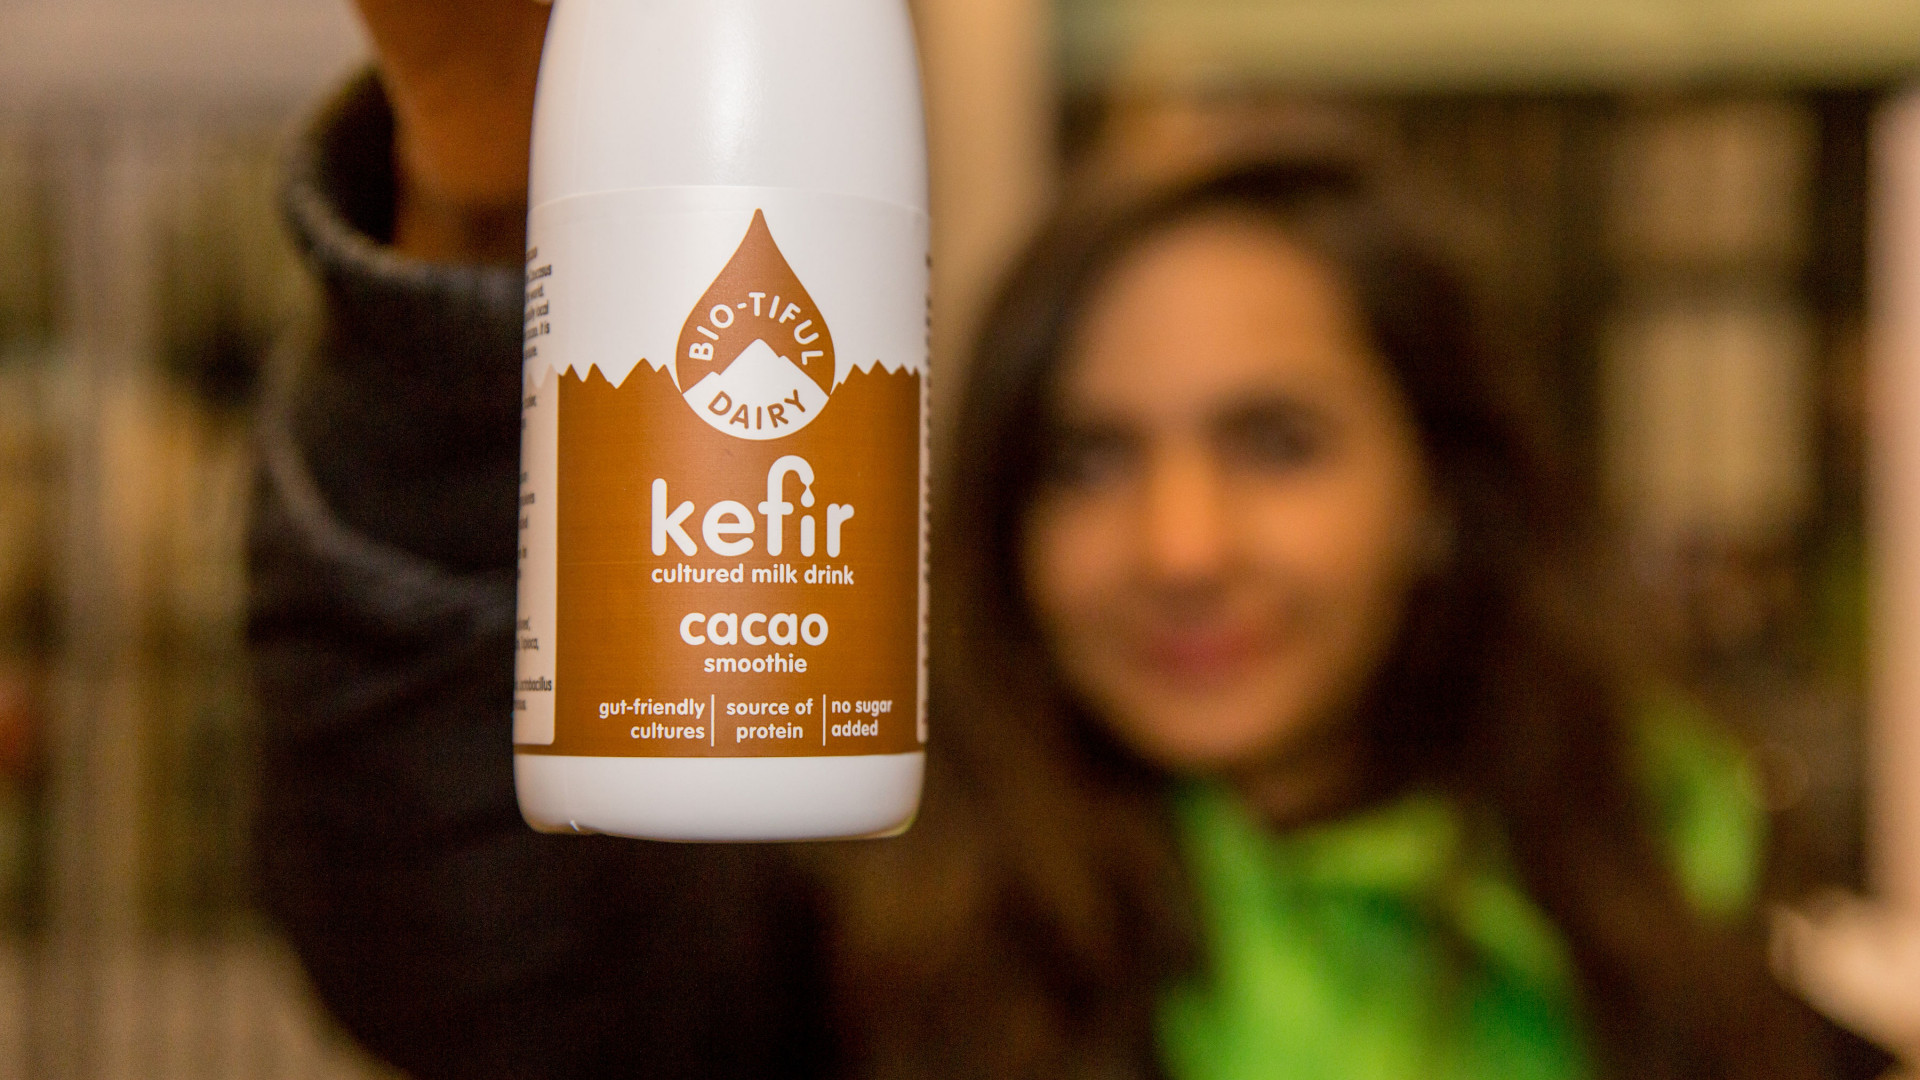 The Foodism 100 awards night 2019: Samples of kefir were handed out by Bio-tiful Dairy